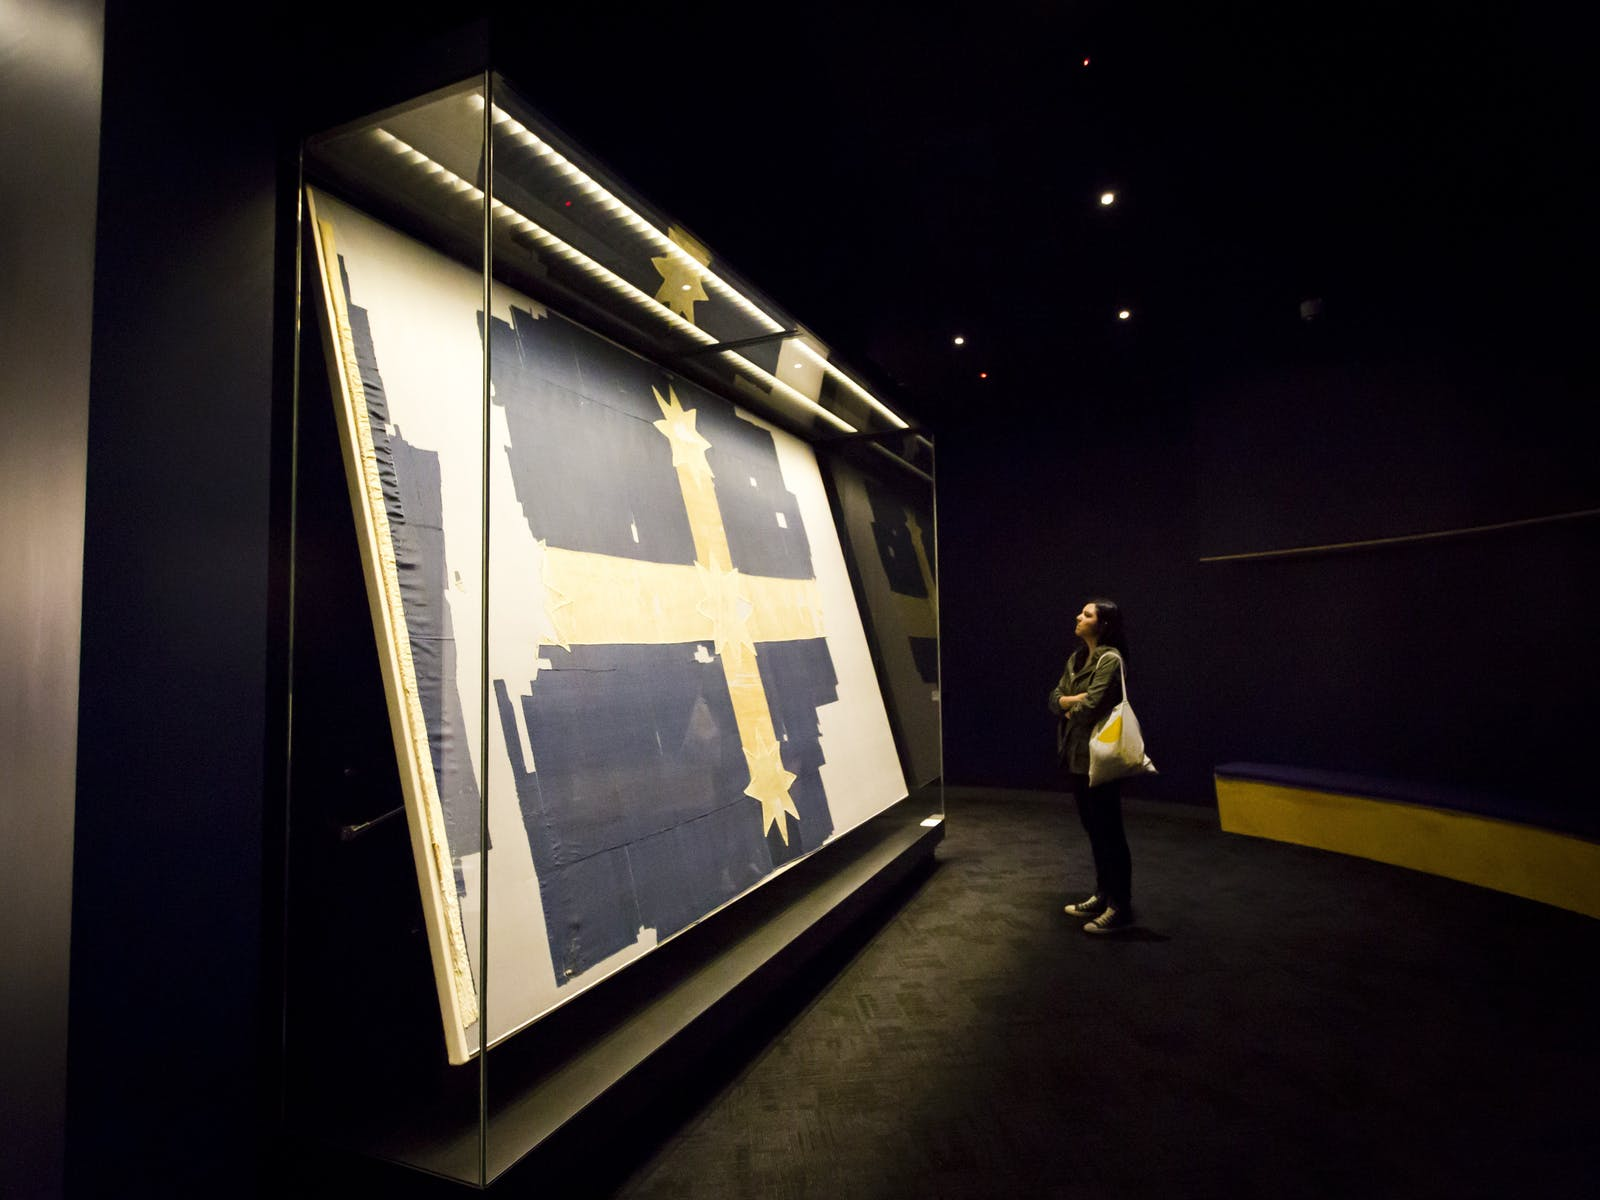 The original Flag of the Southern Cross (the Eureka Flag) from 1854